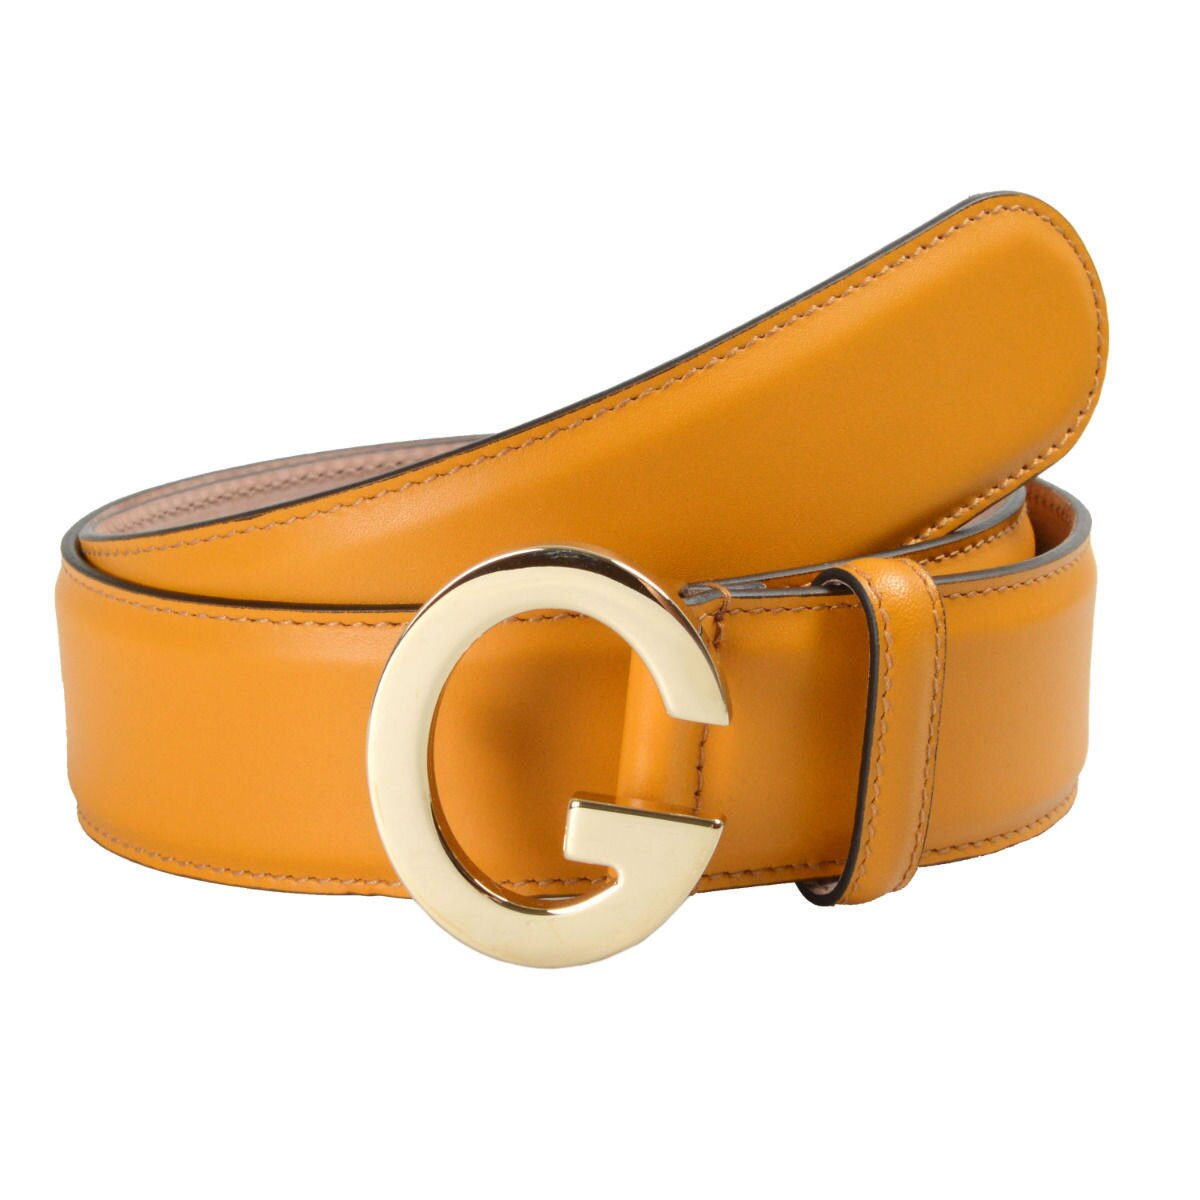 cd8d7c53e36 Gucci Unisex Mustard Yellow Buckle Decorated Leather Belt Sz US 32 IT 80 0